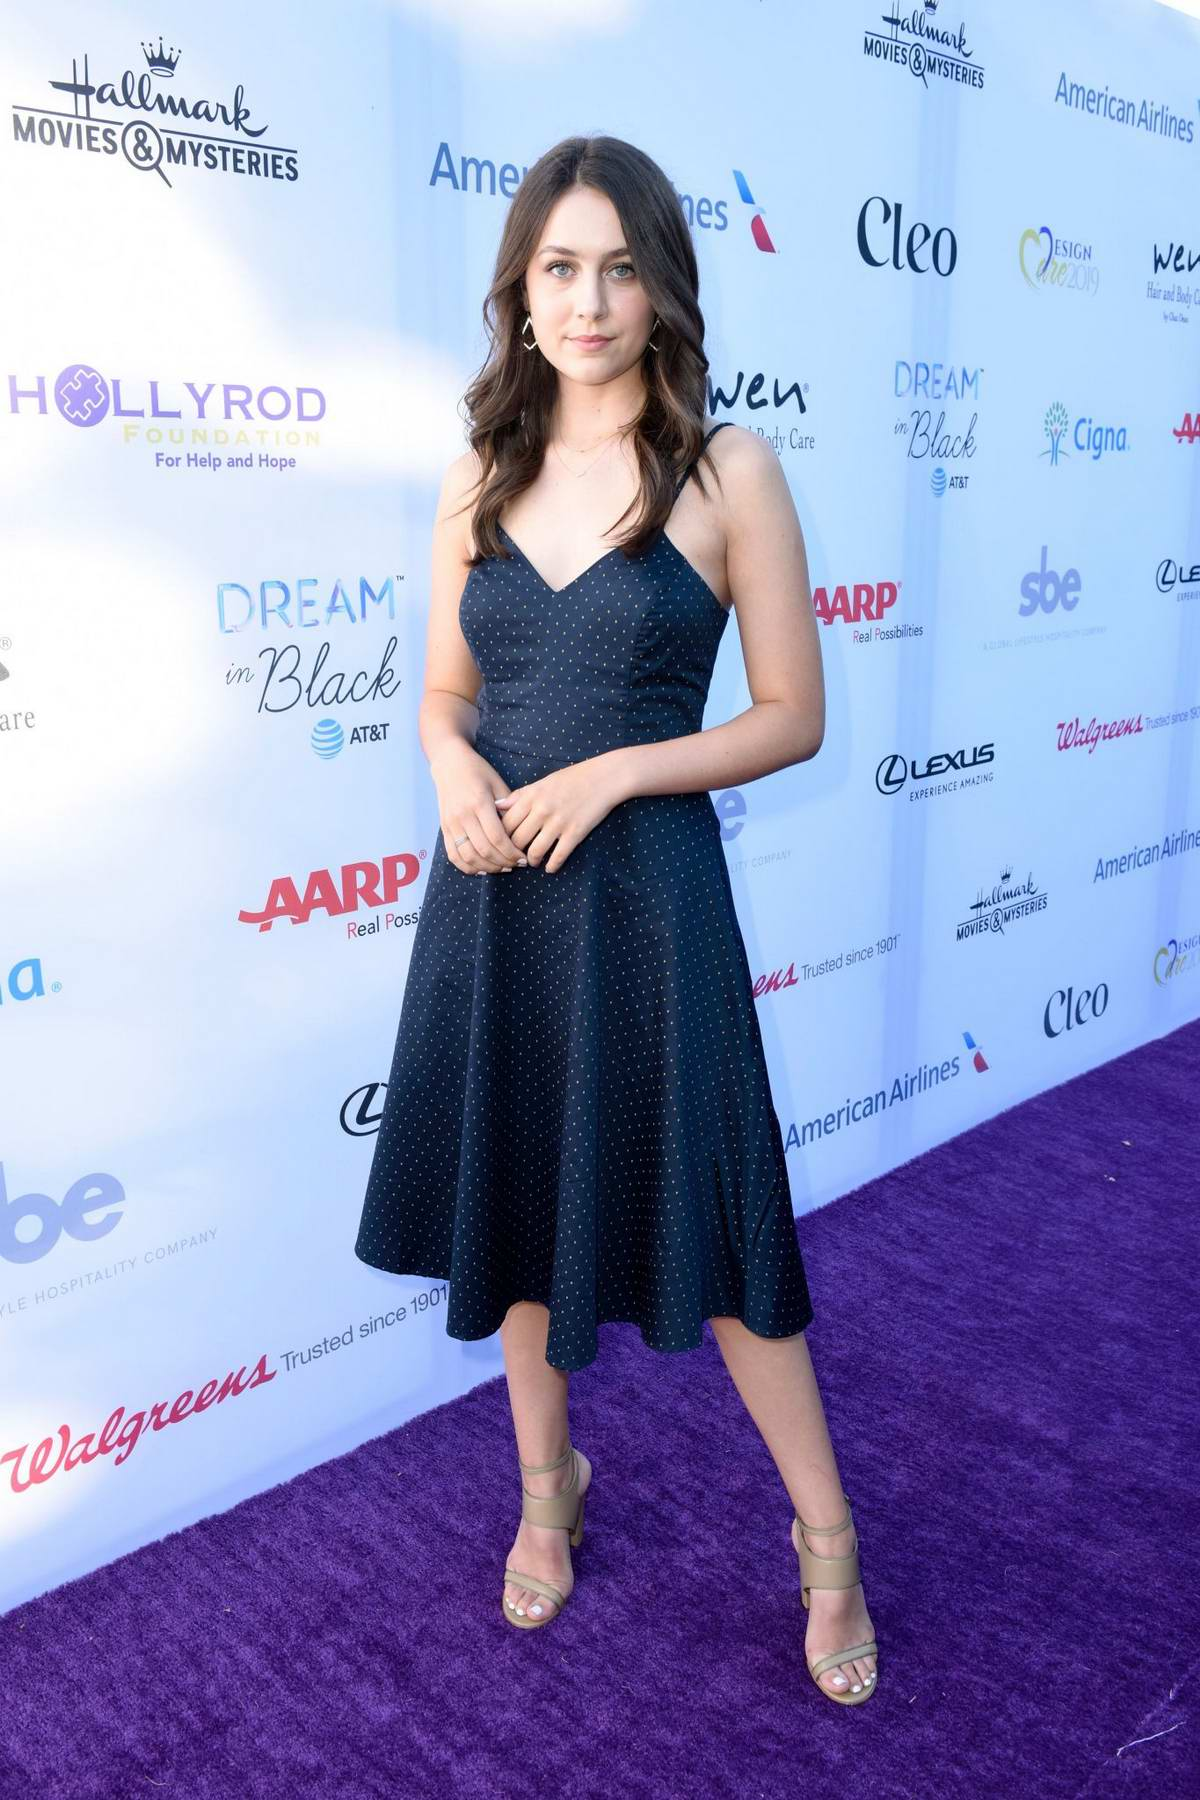 Emma Fuhrmann attends the HollyRod Foundation's 21st Annual DesignCare Gala in Malibu, California